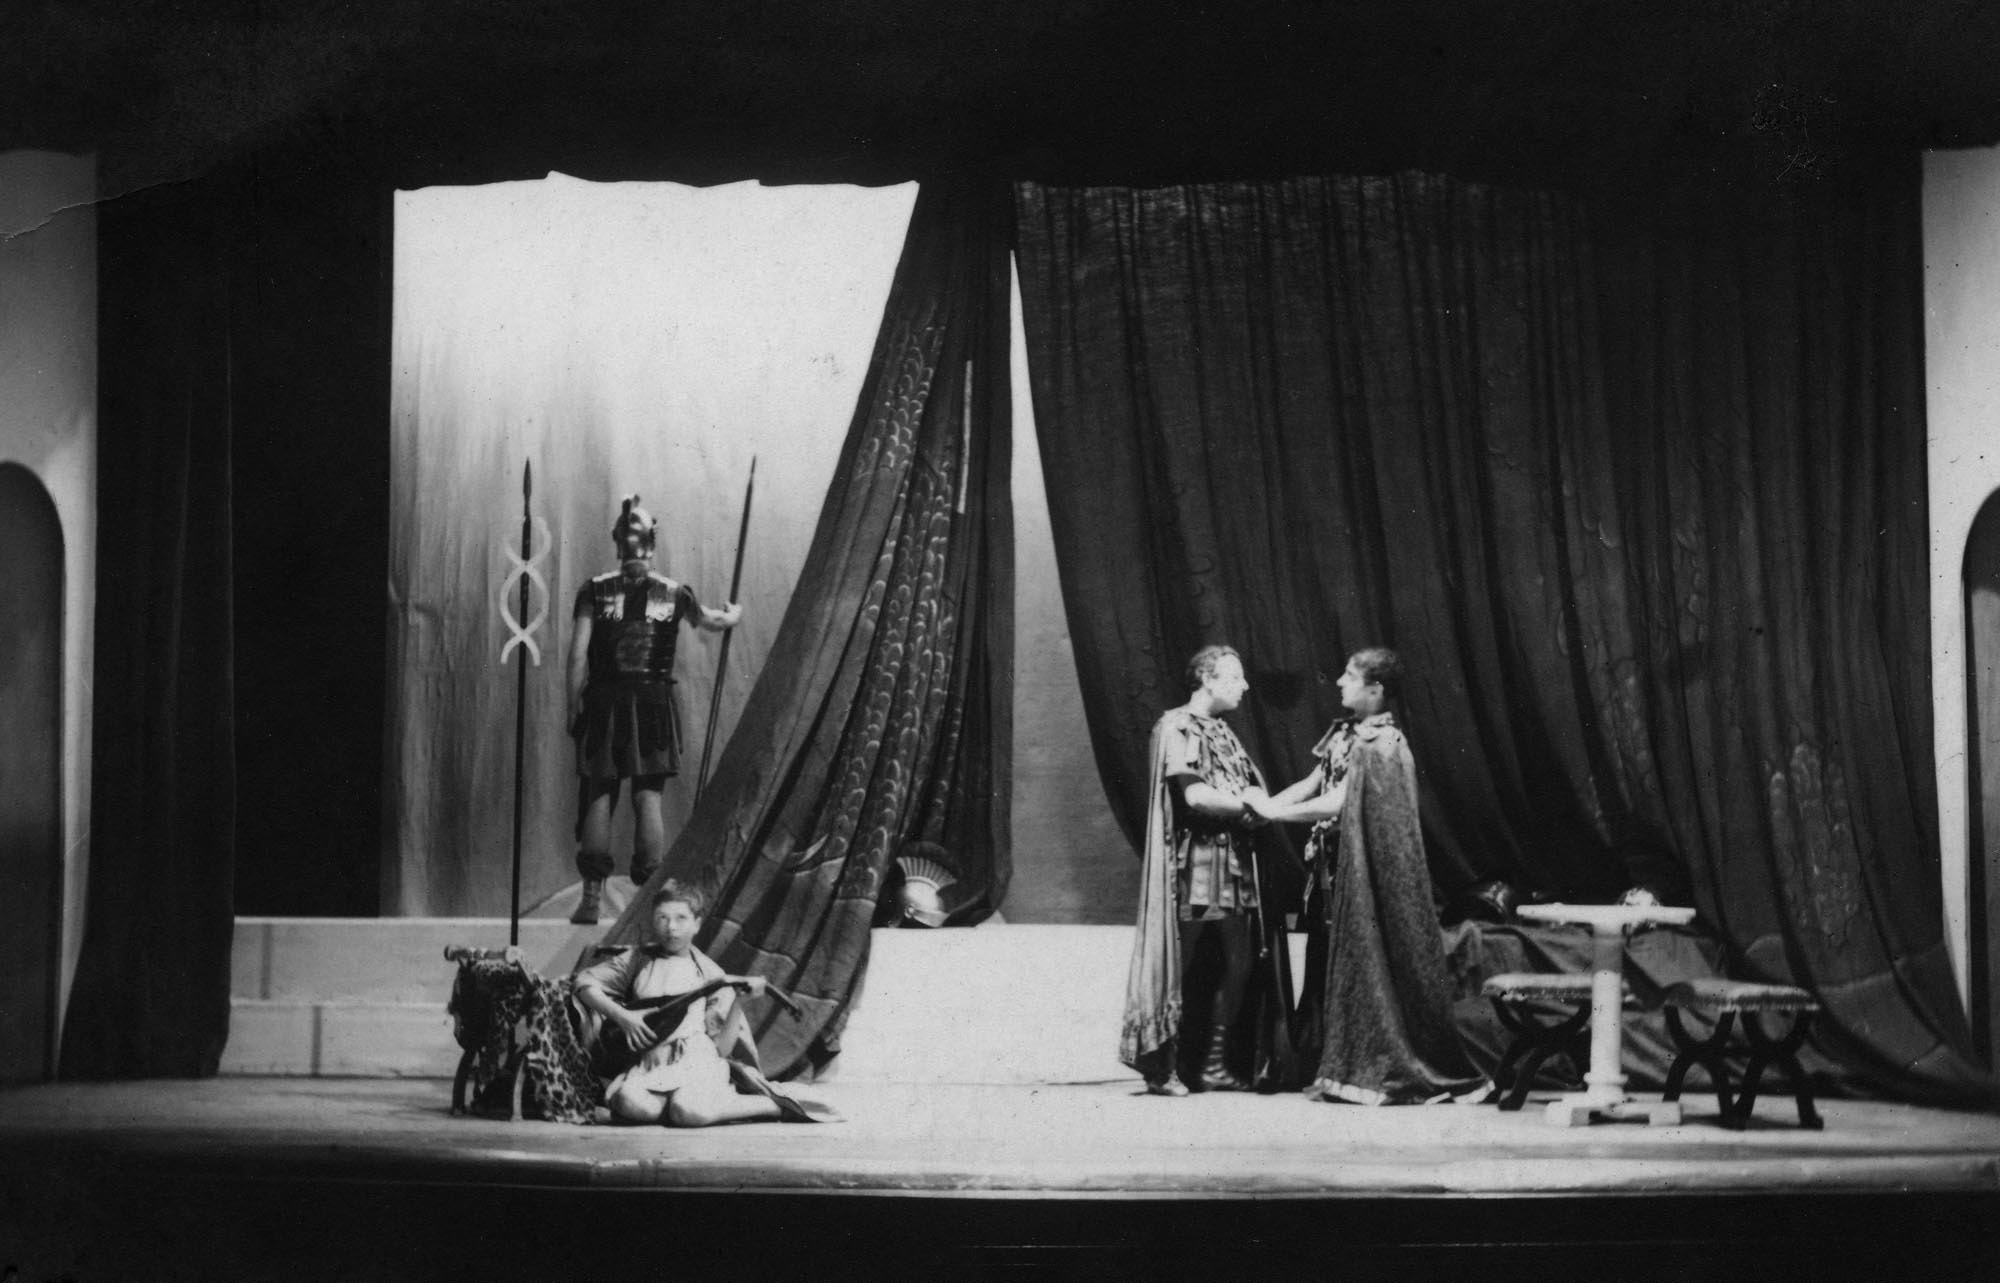 Richard Attenborough as Lucius (lute player) in 1937 - Little Theatre Archive